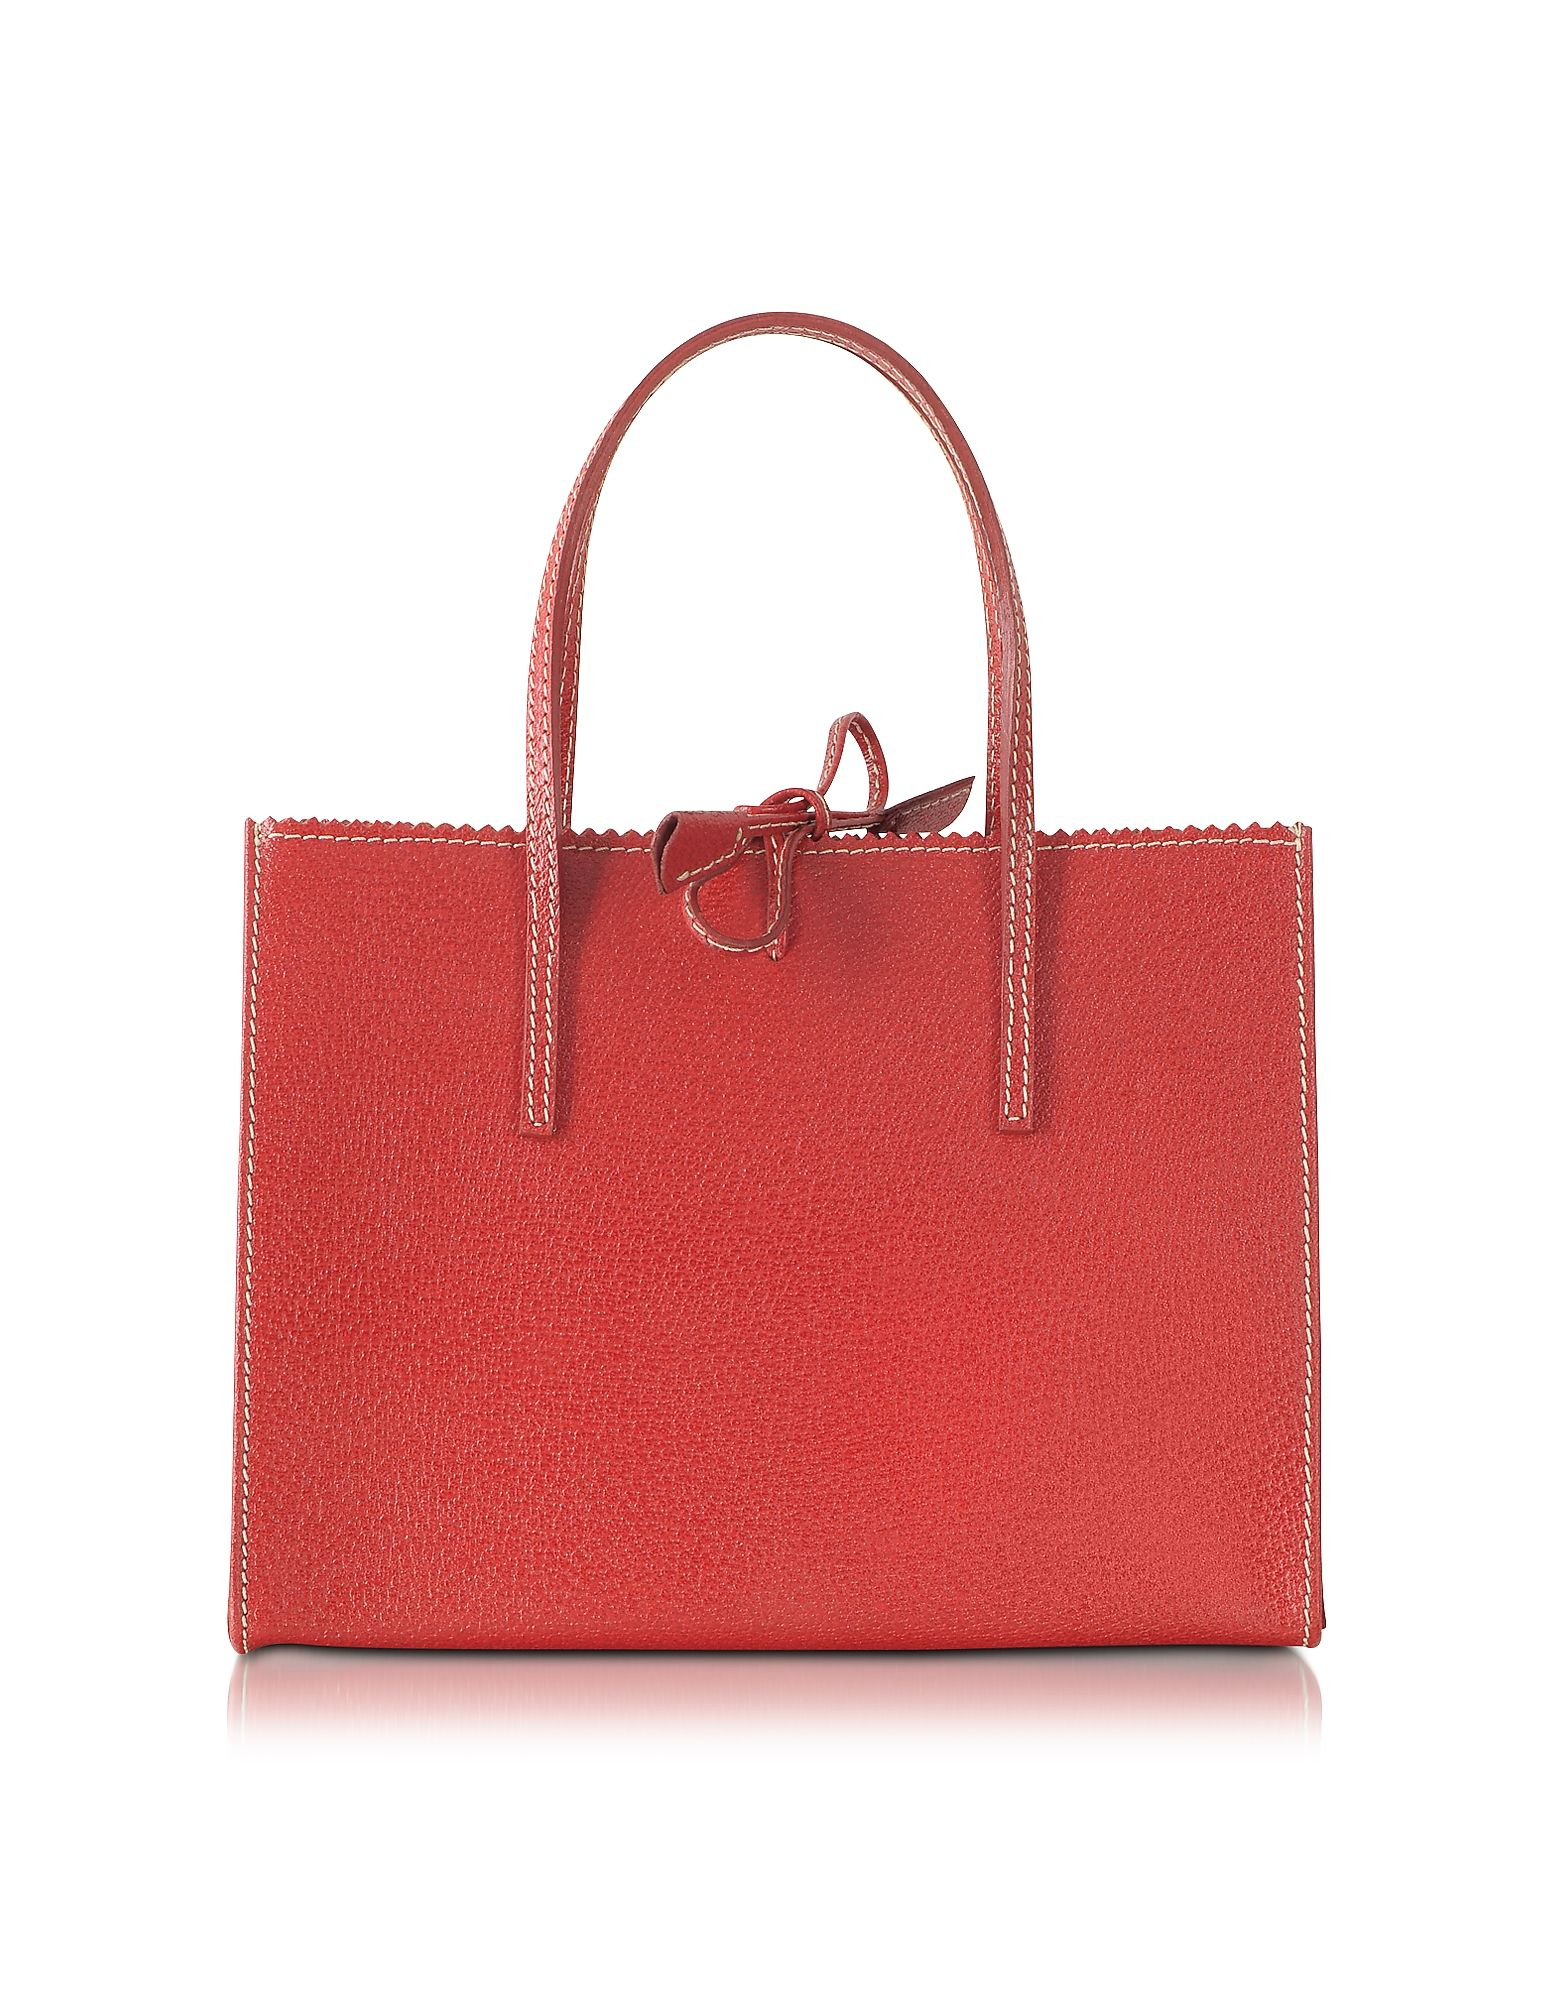 Buti Red Small Wild Boar Leather Tote